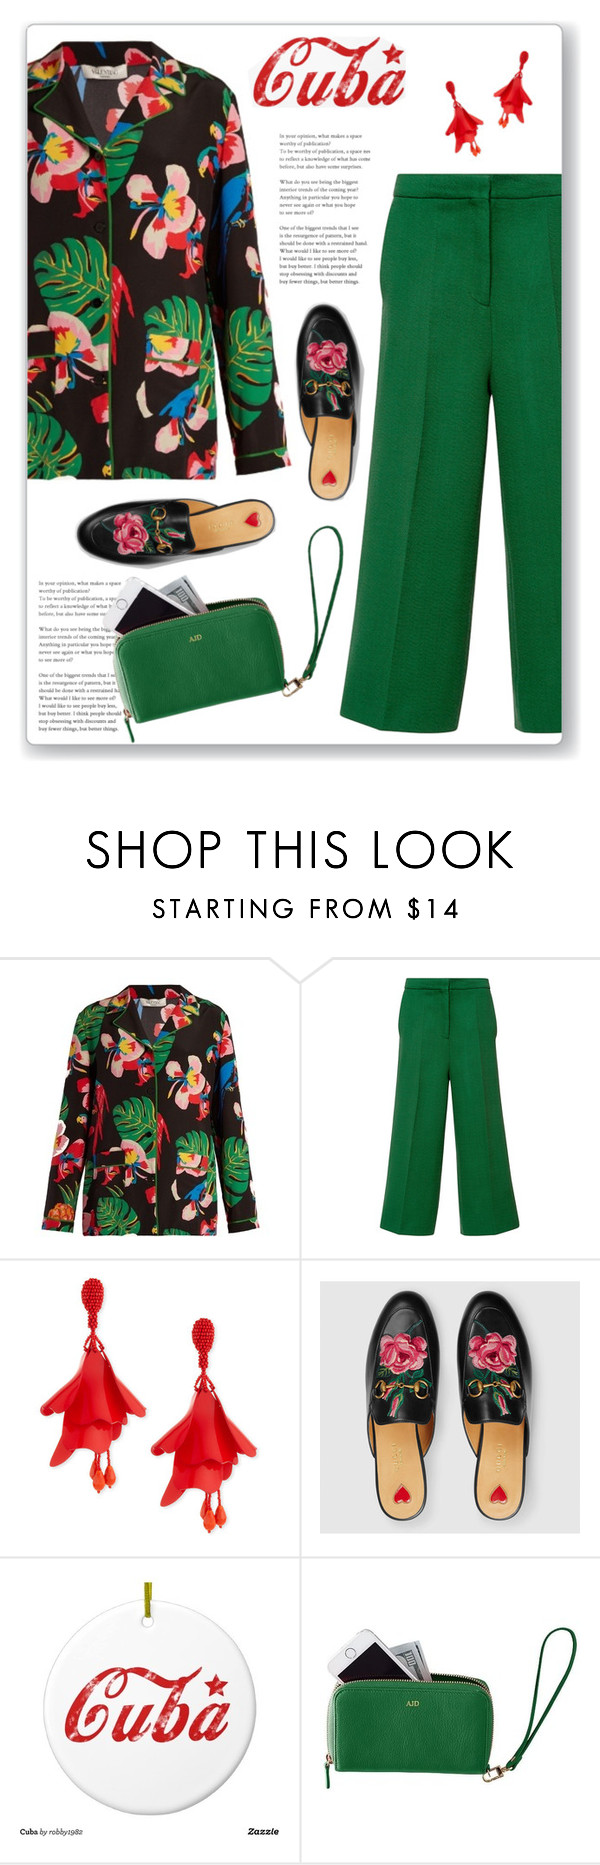 """""""Pack and Go: Cuba!"""" by polivorka-polivorochka ❤ liked on Polyvore featuring Valentino, Rochas, Oscar de la Renta, Gucci, Mark & Graham and Packandgo"""